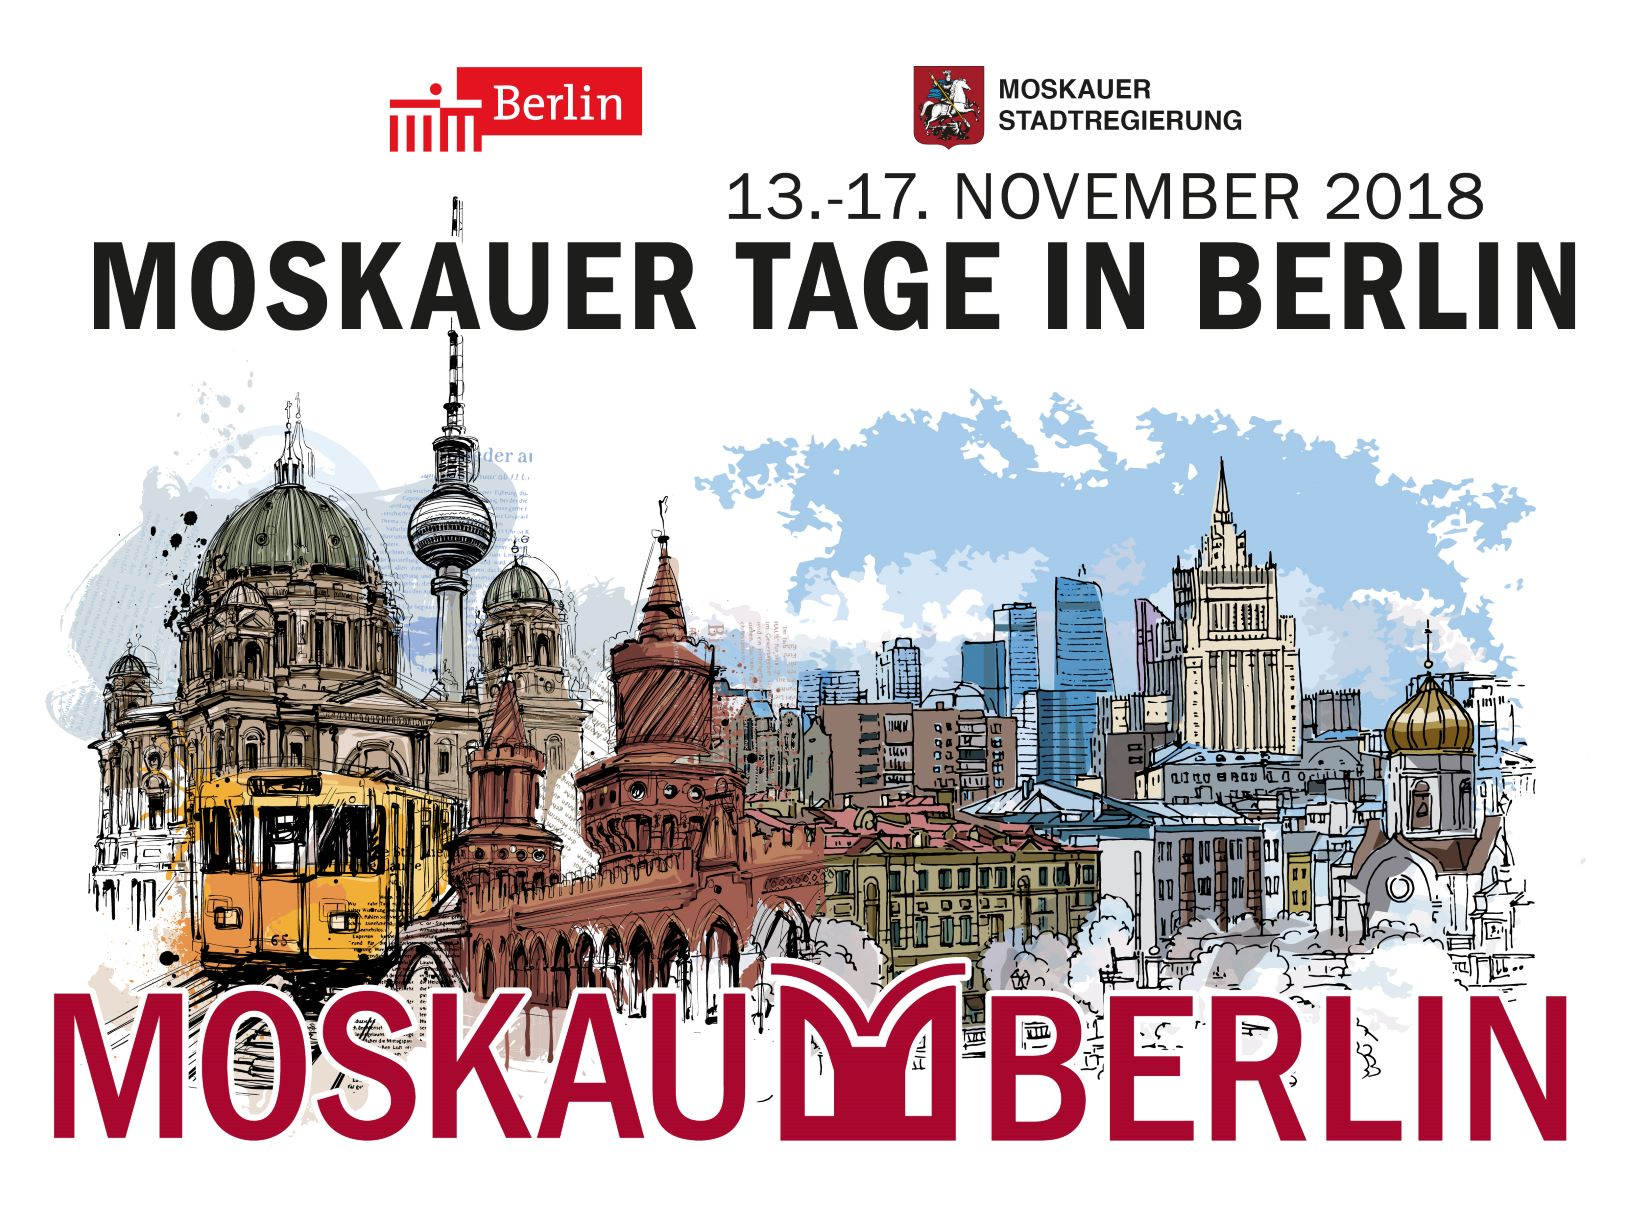 plakat moskauer tage1